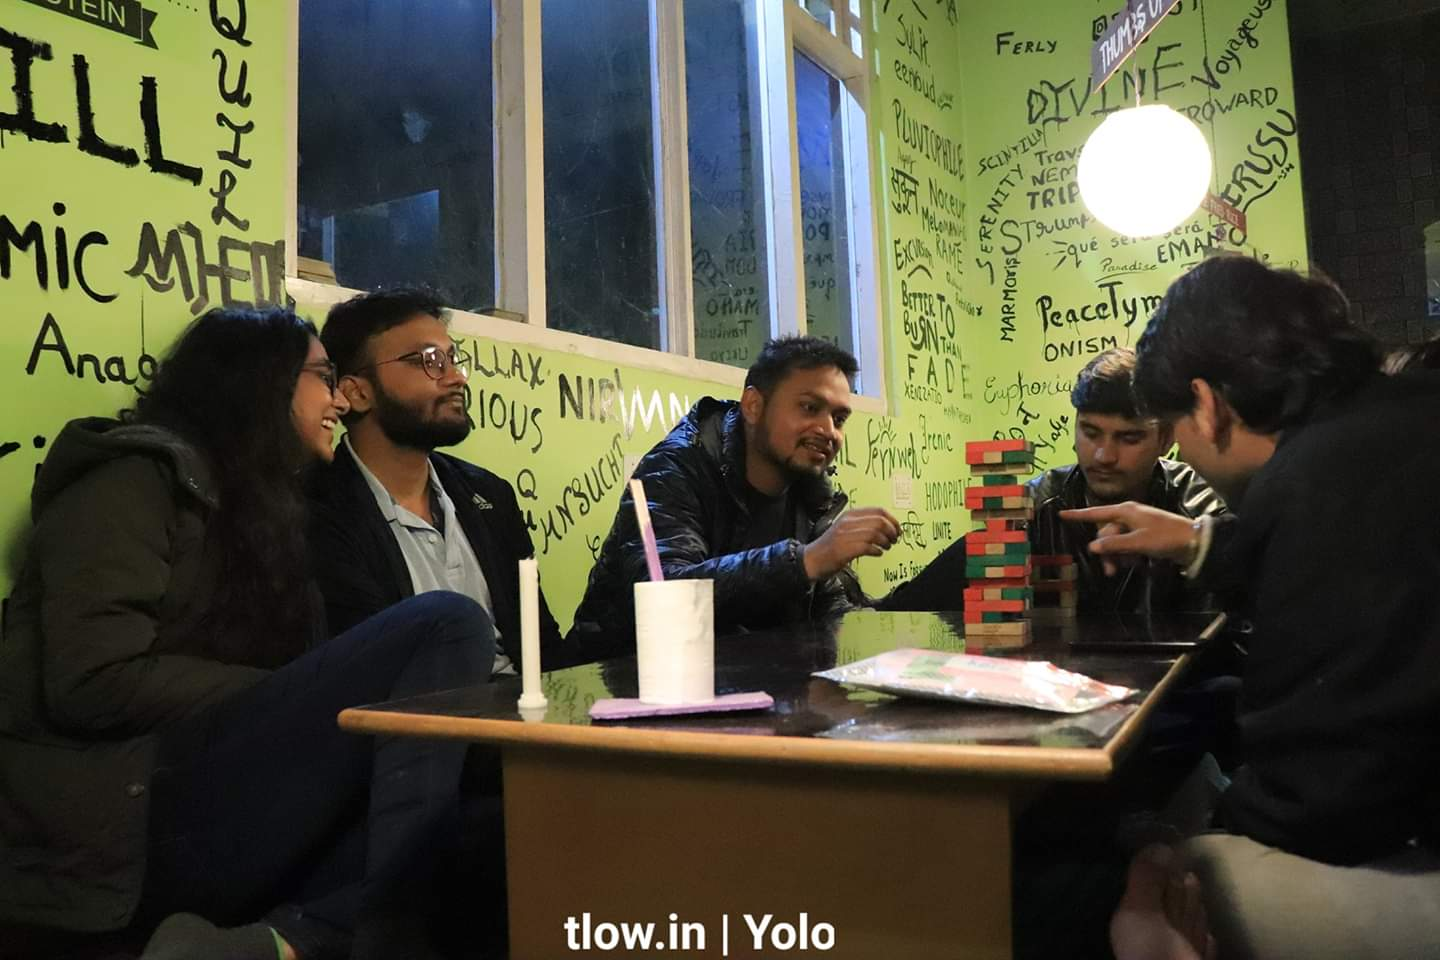 After hours chilling at Yolo